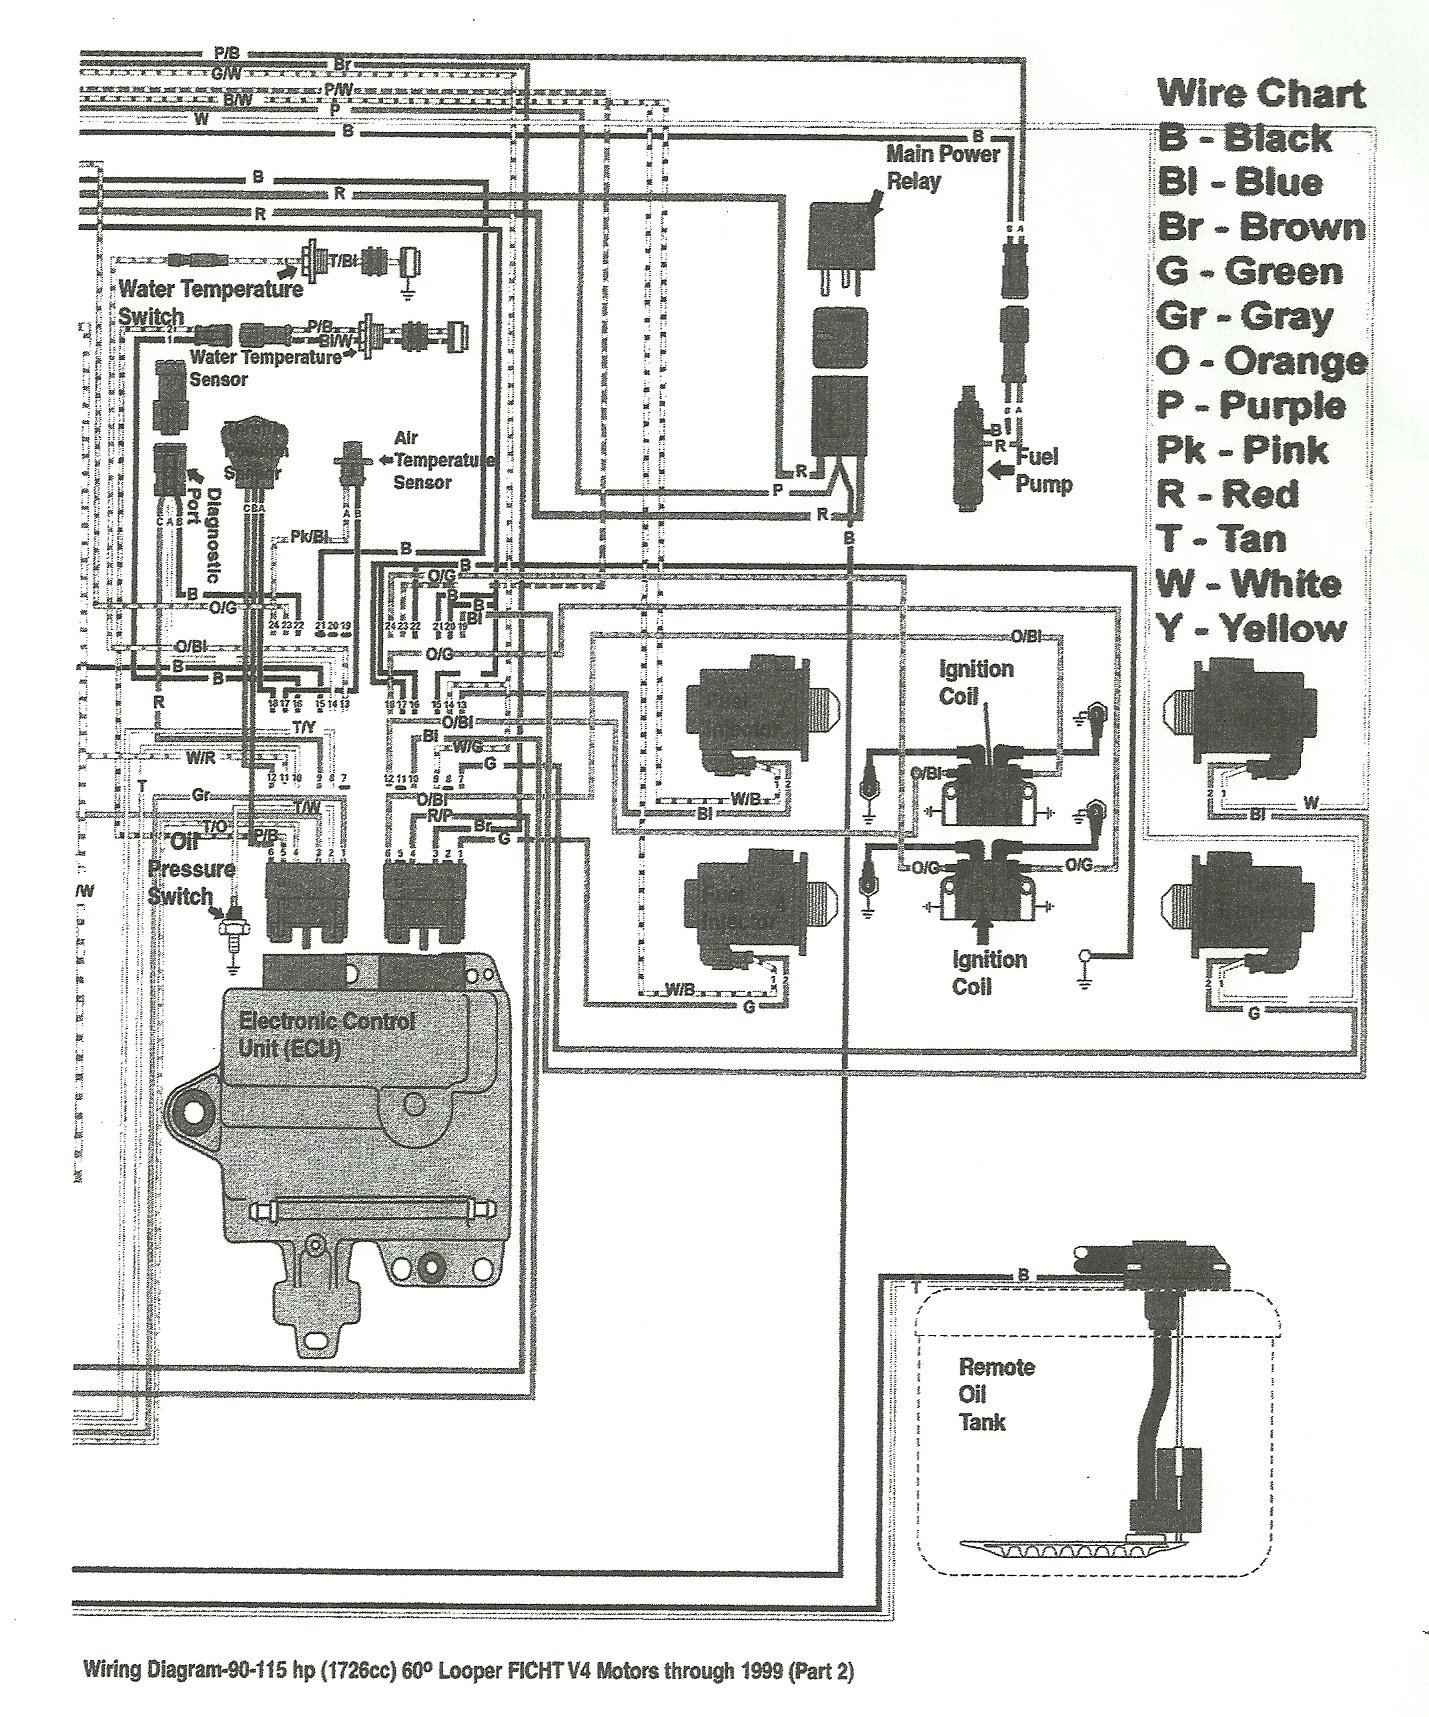 mercruiser tilt trim diagram  parts  wiring diagram images